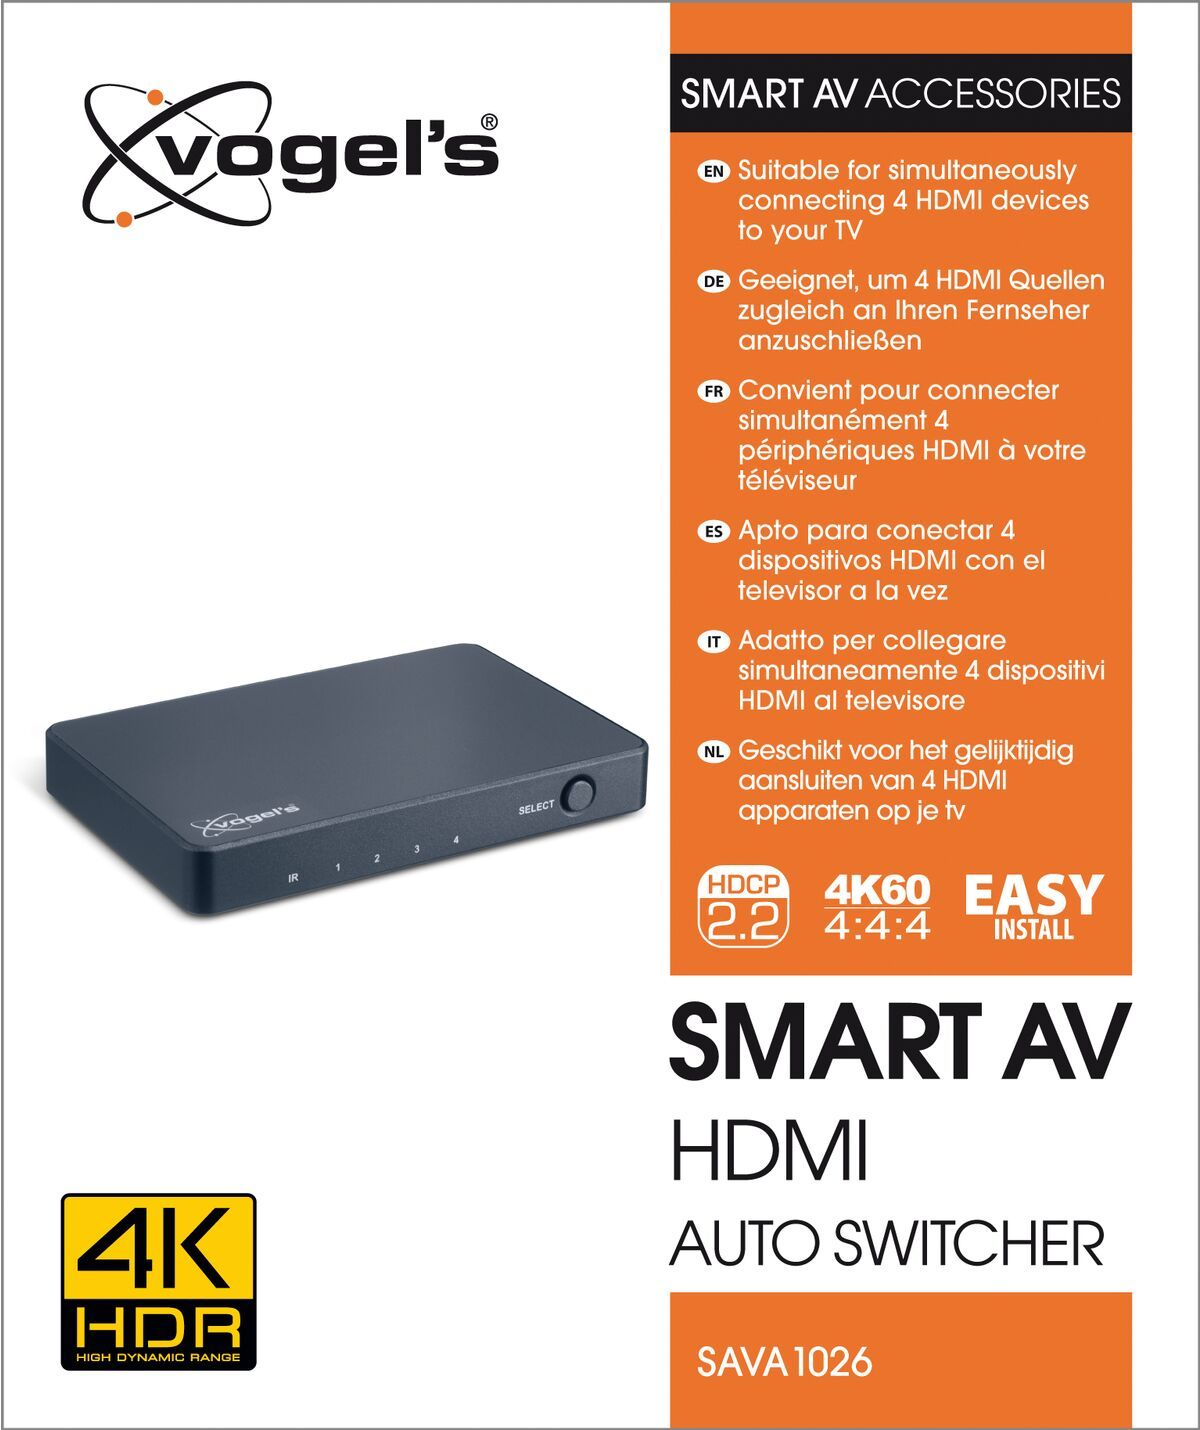 Vogel's Conmutador audiovisual automático HDMI inteligente SAVA 1026 - Packaging front